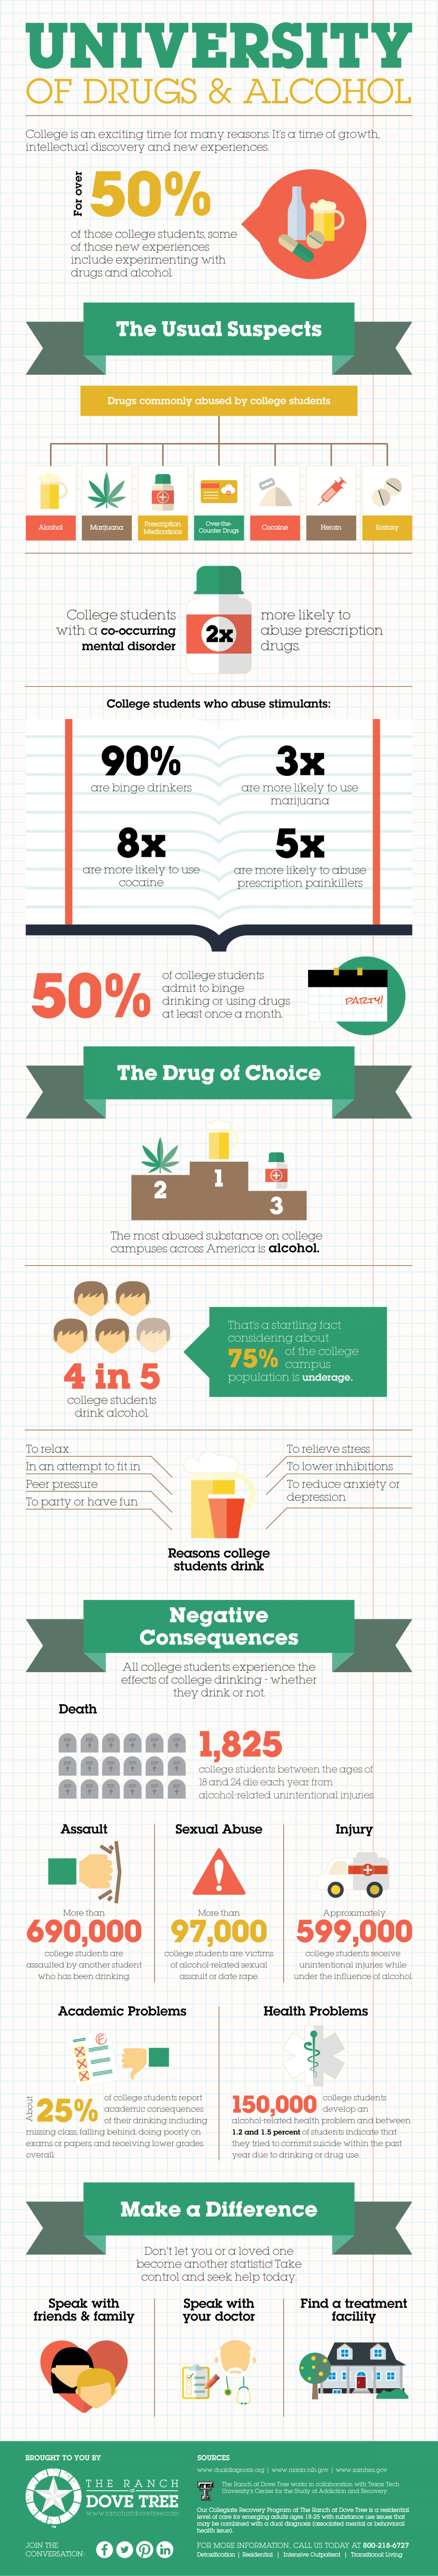 University of Drugs and Alcohol Infographic